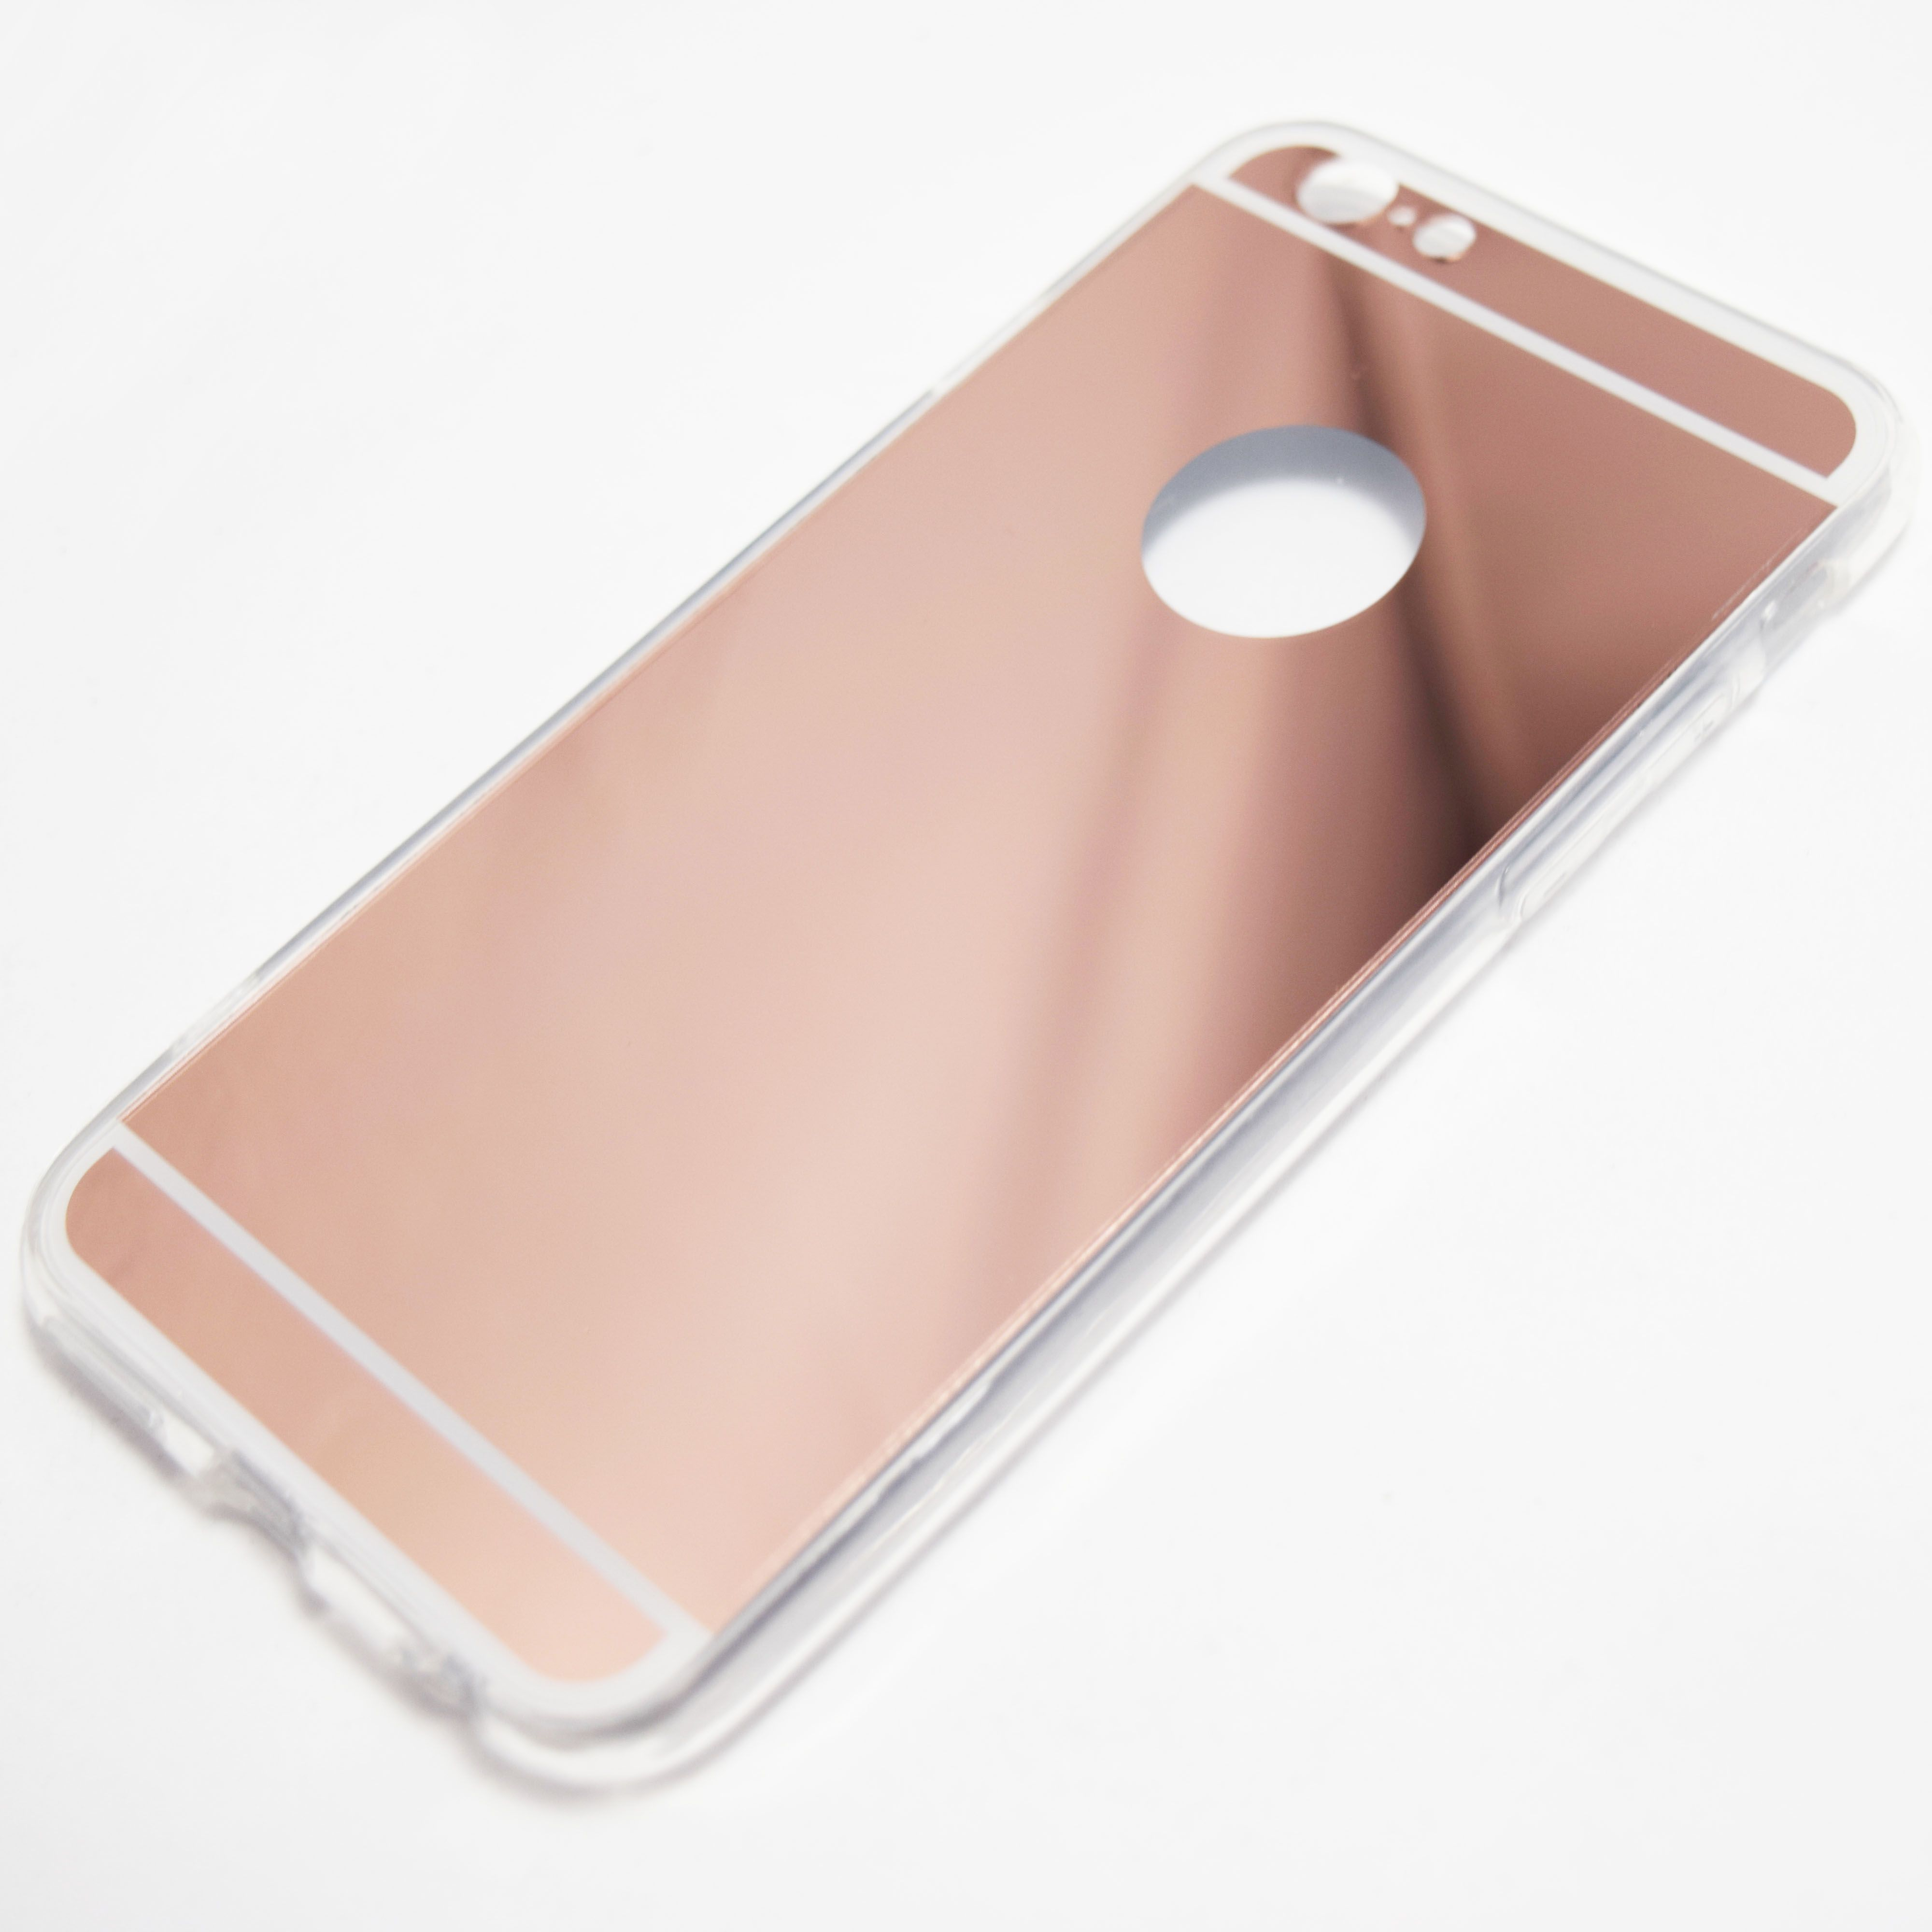 Rose Gold iPhone 6 iPhone 6S Reflective Mirror Case